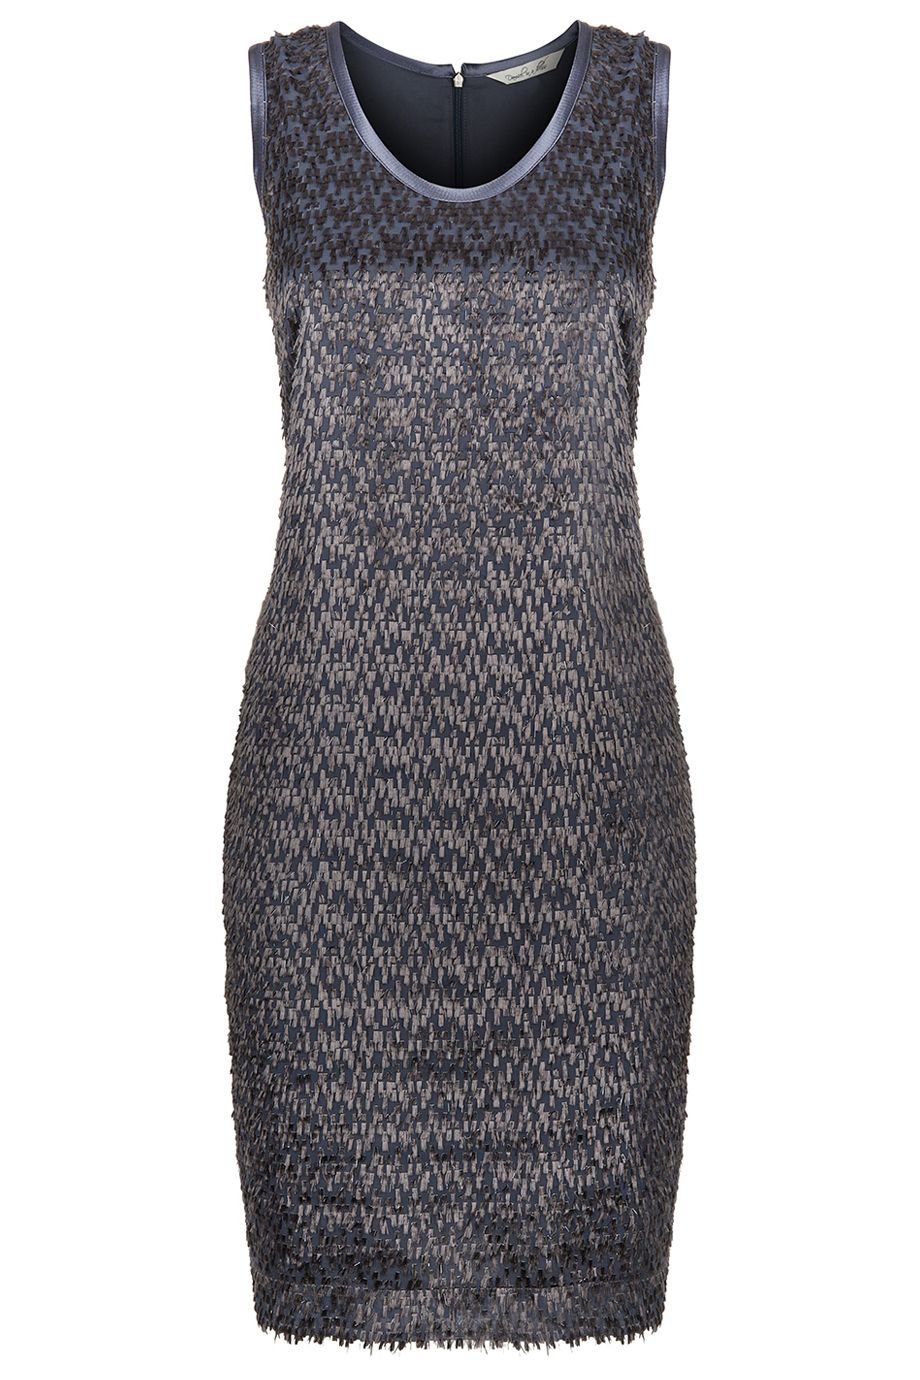 Damsel in a Dress Talia Dress, Grey